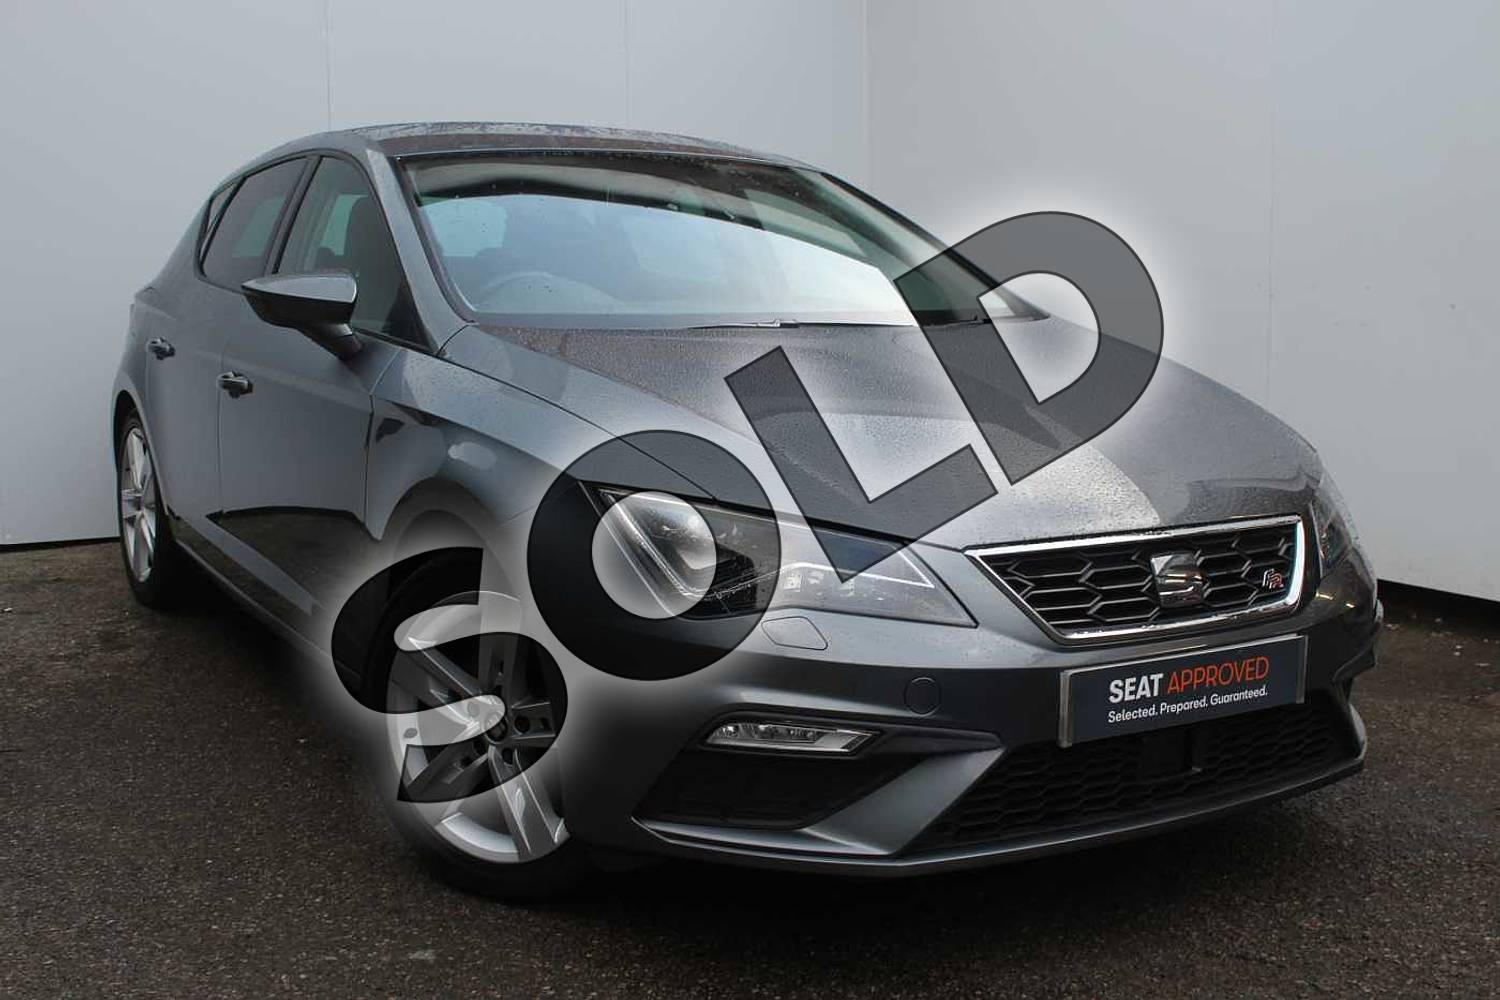 SEAT Leon 1.4 EcoTSI 150 FR Technology 5dr for sale at ...